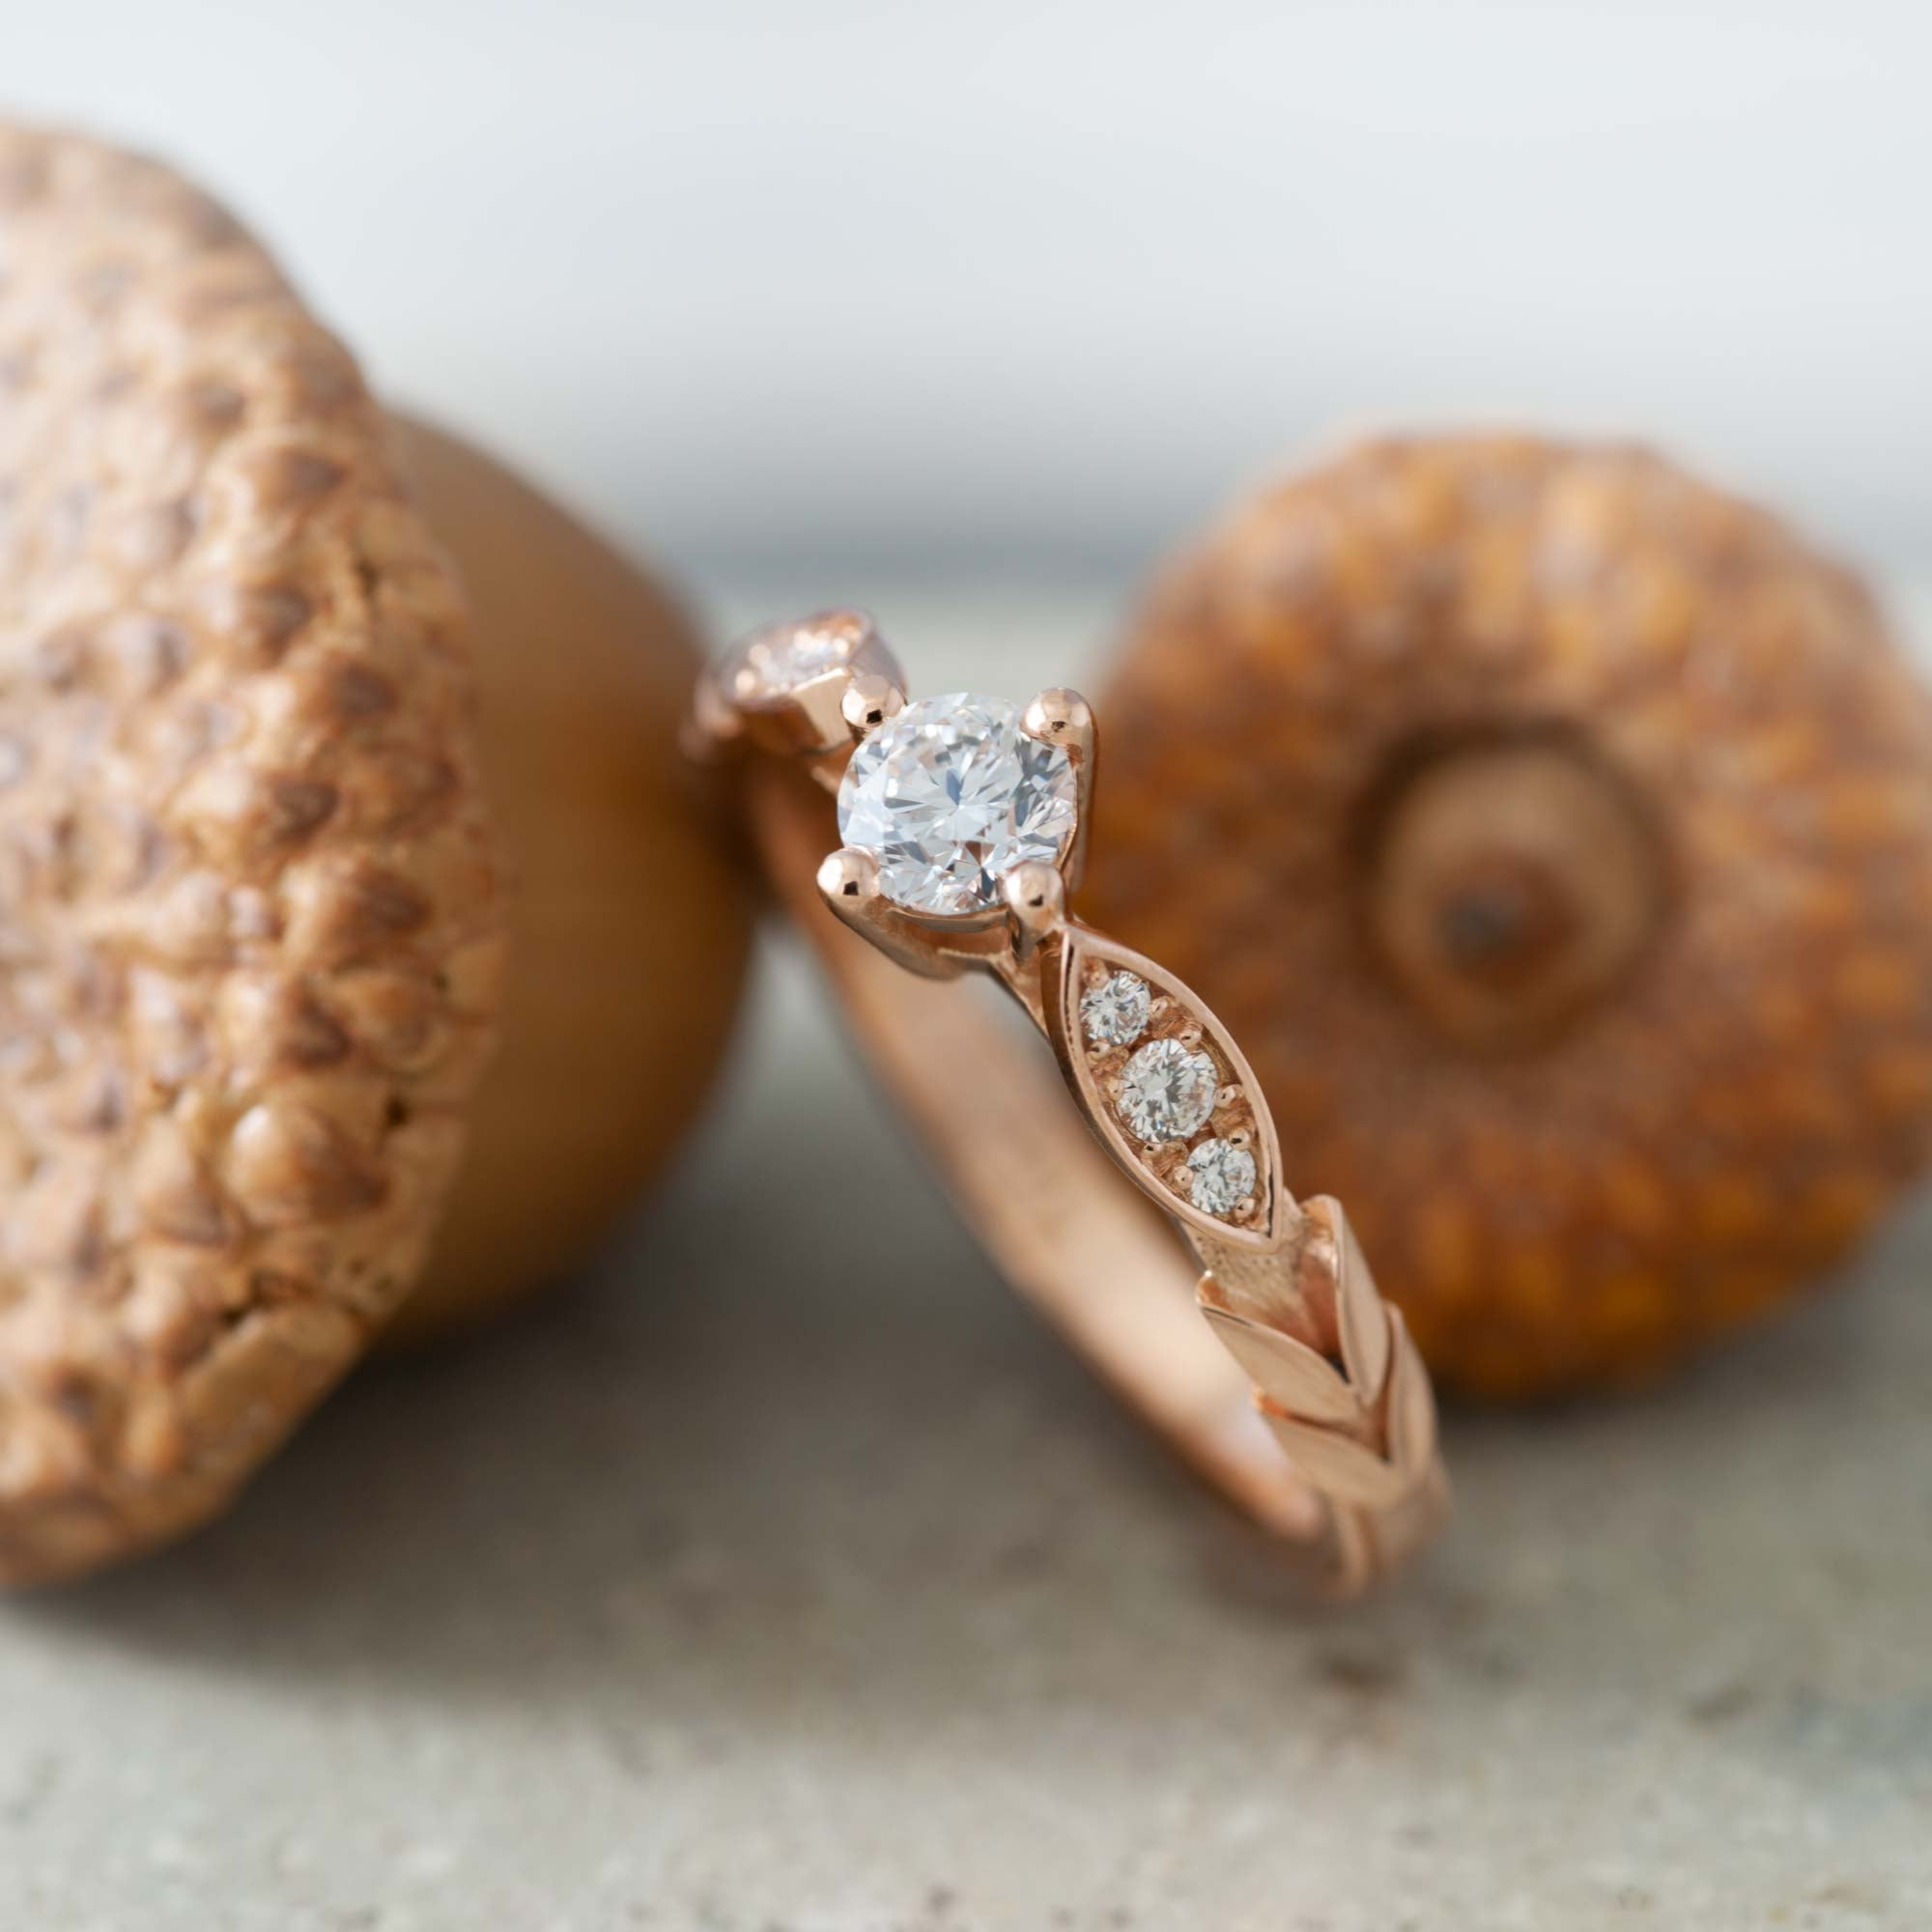 Rose Gold Diamond Engagement Ring | Era Design Vancouver Canada